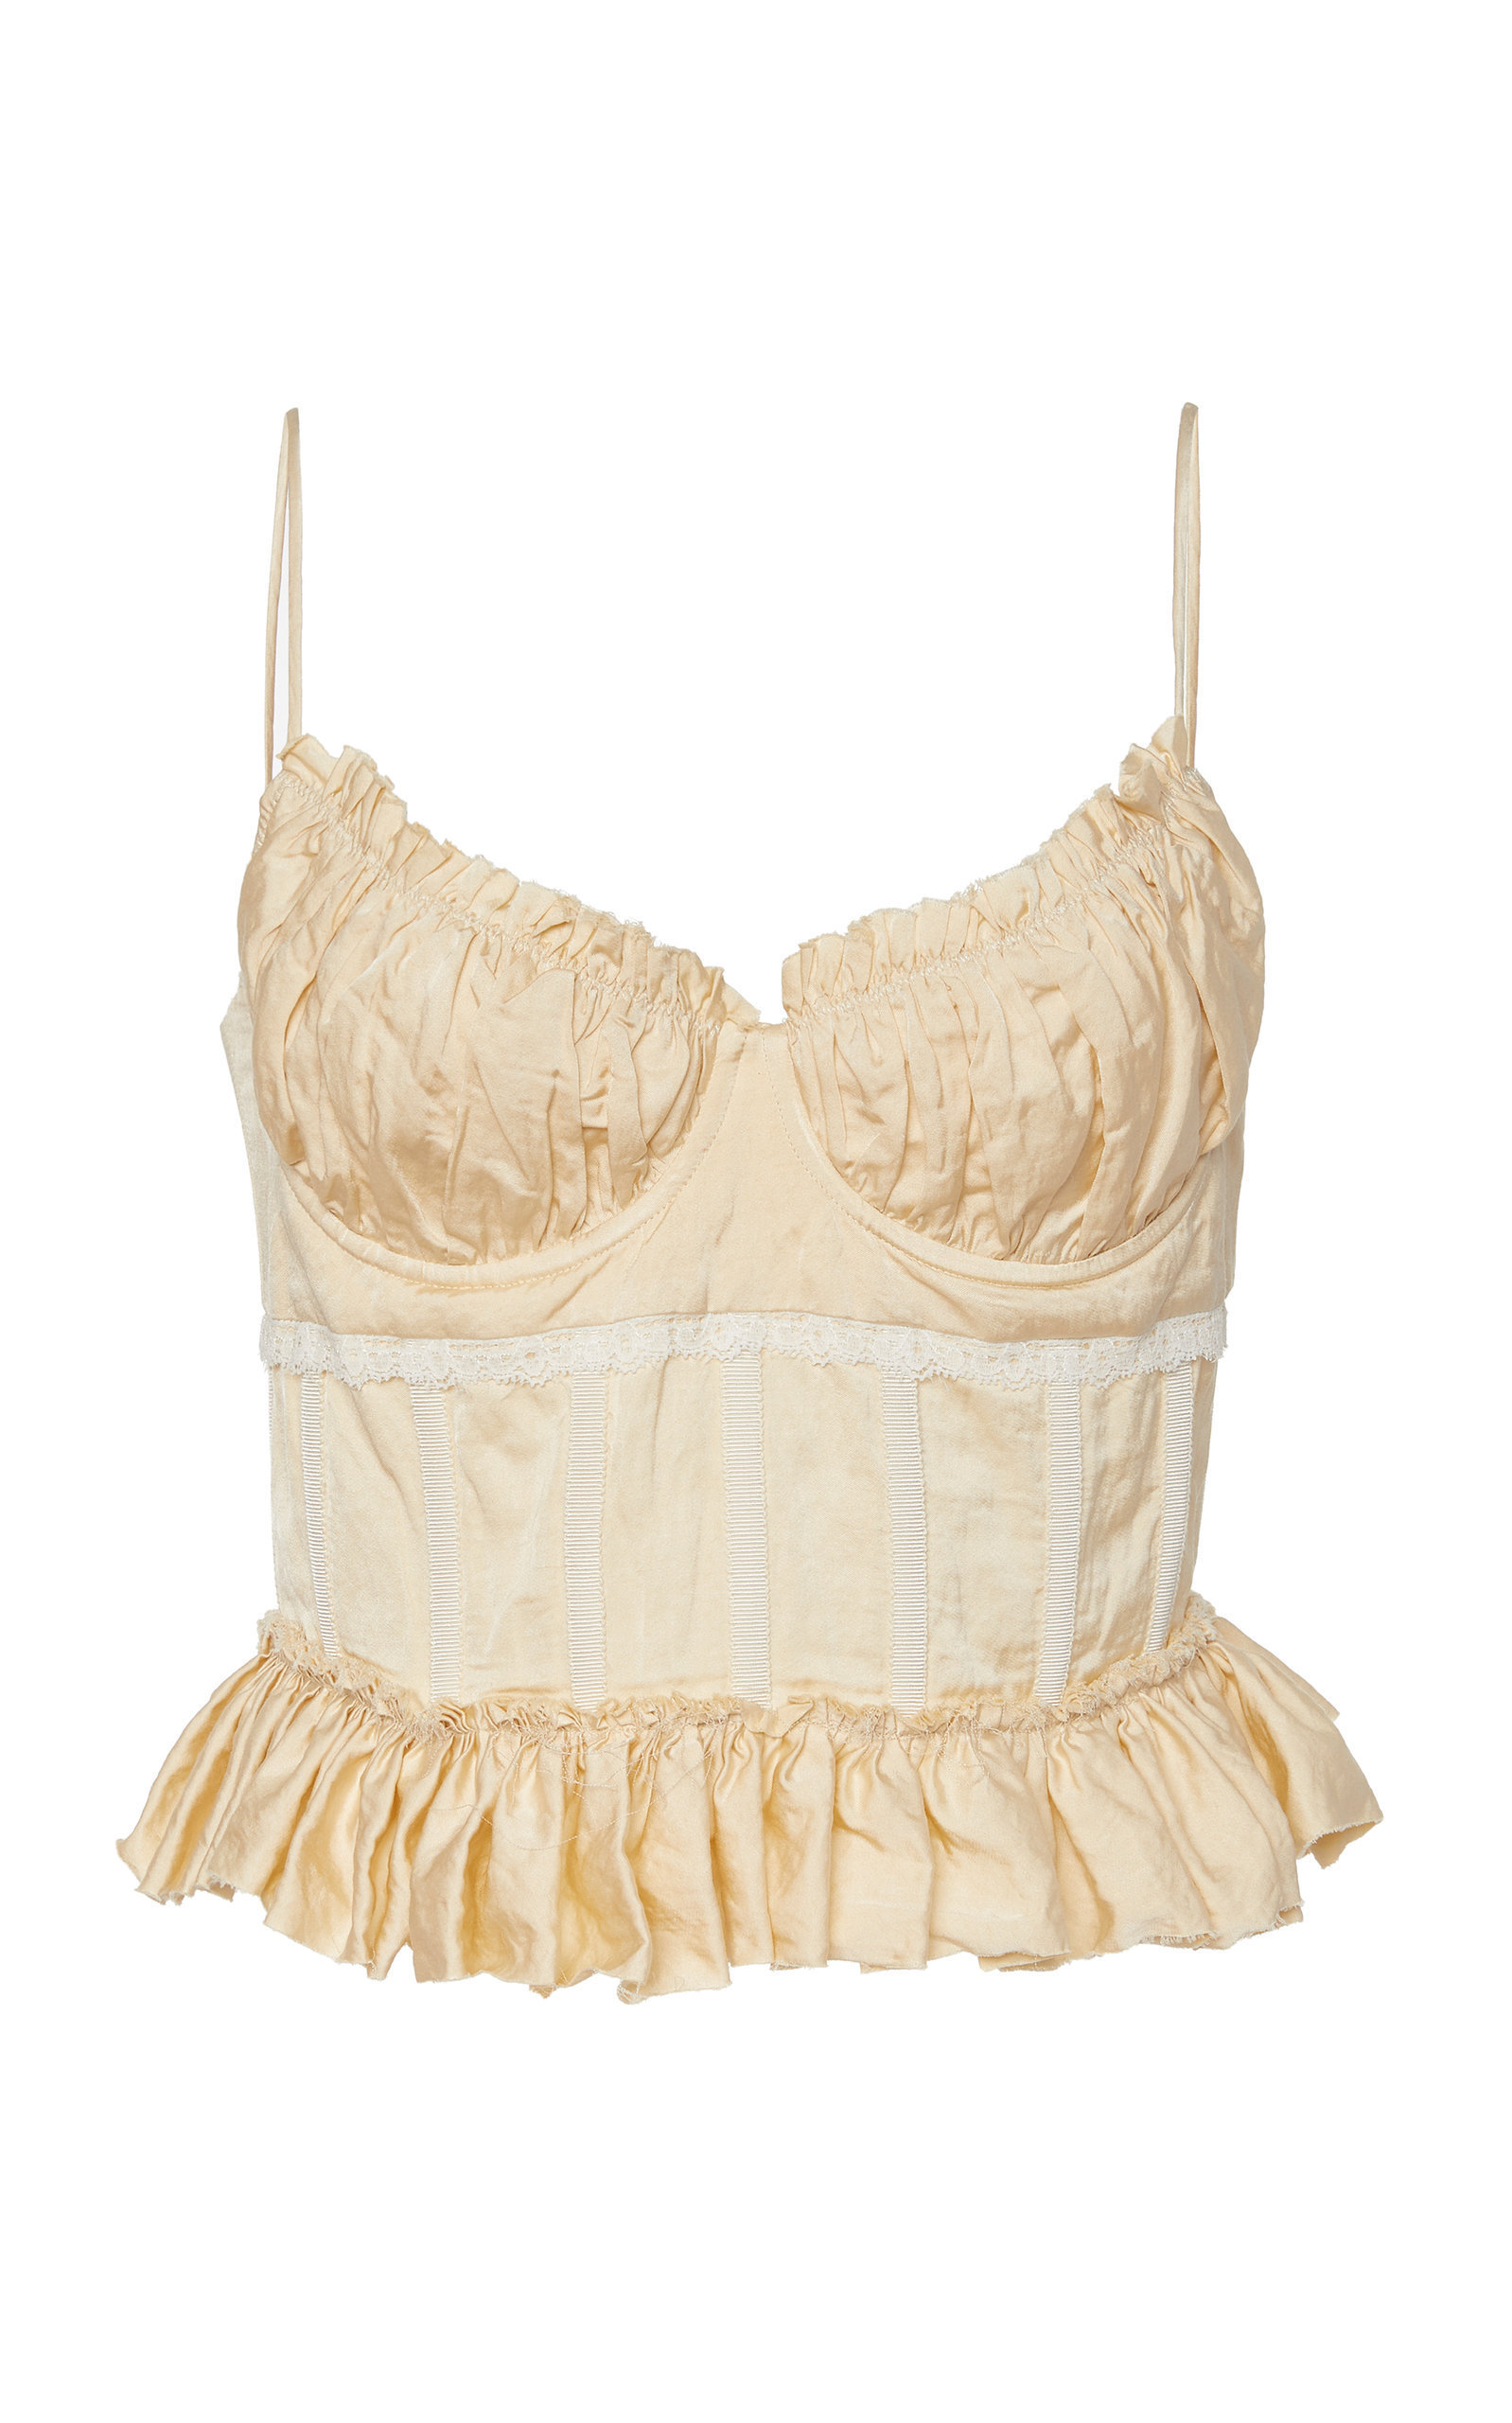 Oatmeal Ruched Taffeta Bustier Top